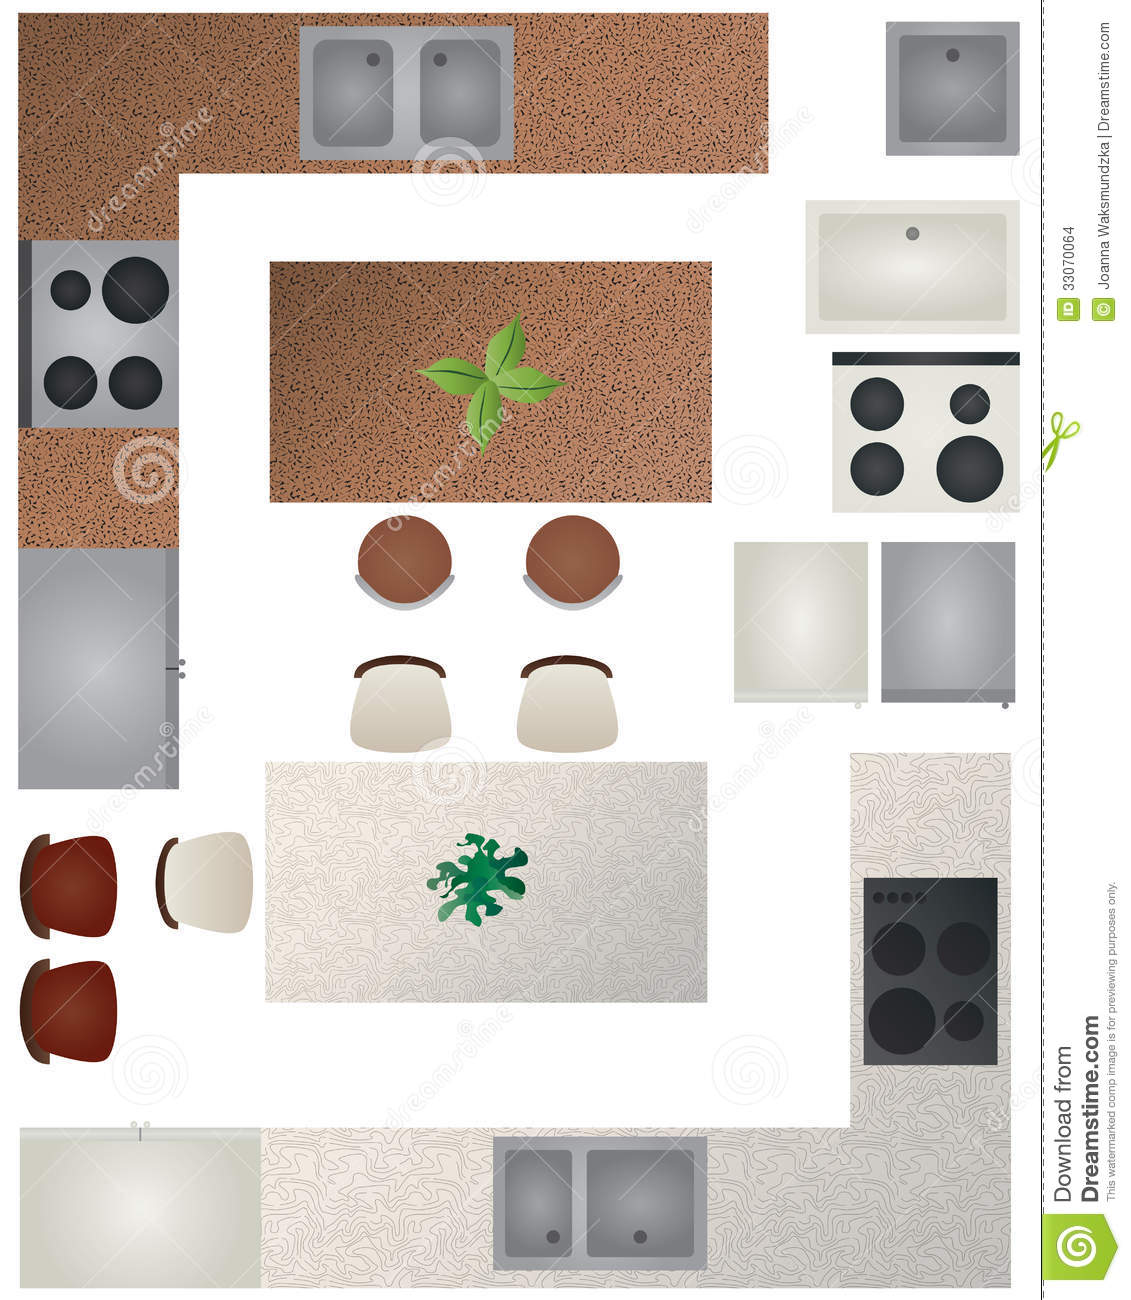 stock images floor plan kitchen collection furniture can be used making image kitchen floor plans Floor Plan Kitchen Collection